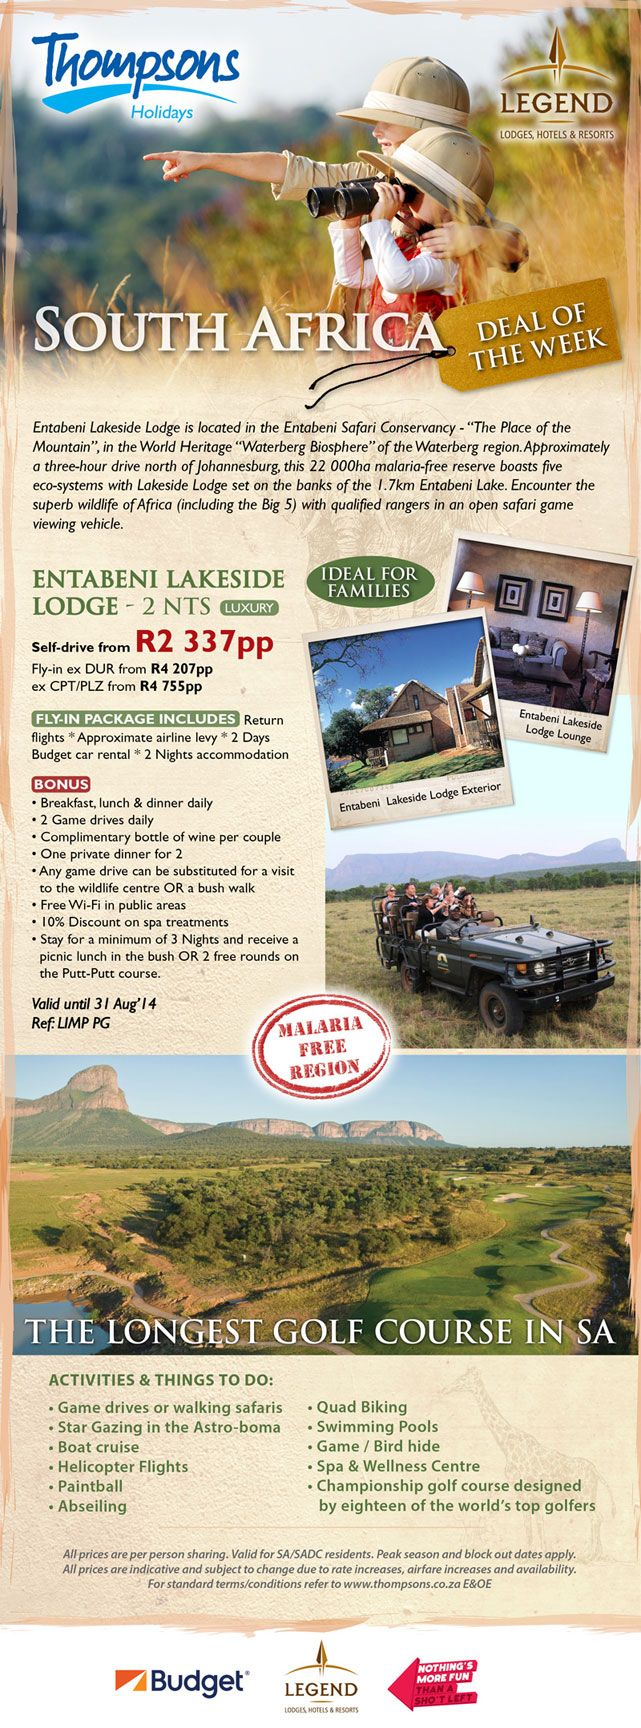 """Don't miss out on our favourite deal of the week! Entabeni Lakeside Lodge is located in the Entabeni Safari Conservancy - """"The Place of the Mountain"""" in the world heritage """"Waterberg Biosphere"""" of the Waterberg region. http://bit.ly/1qV02cL"""